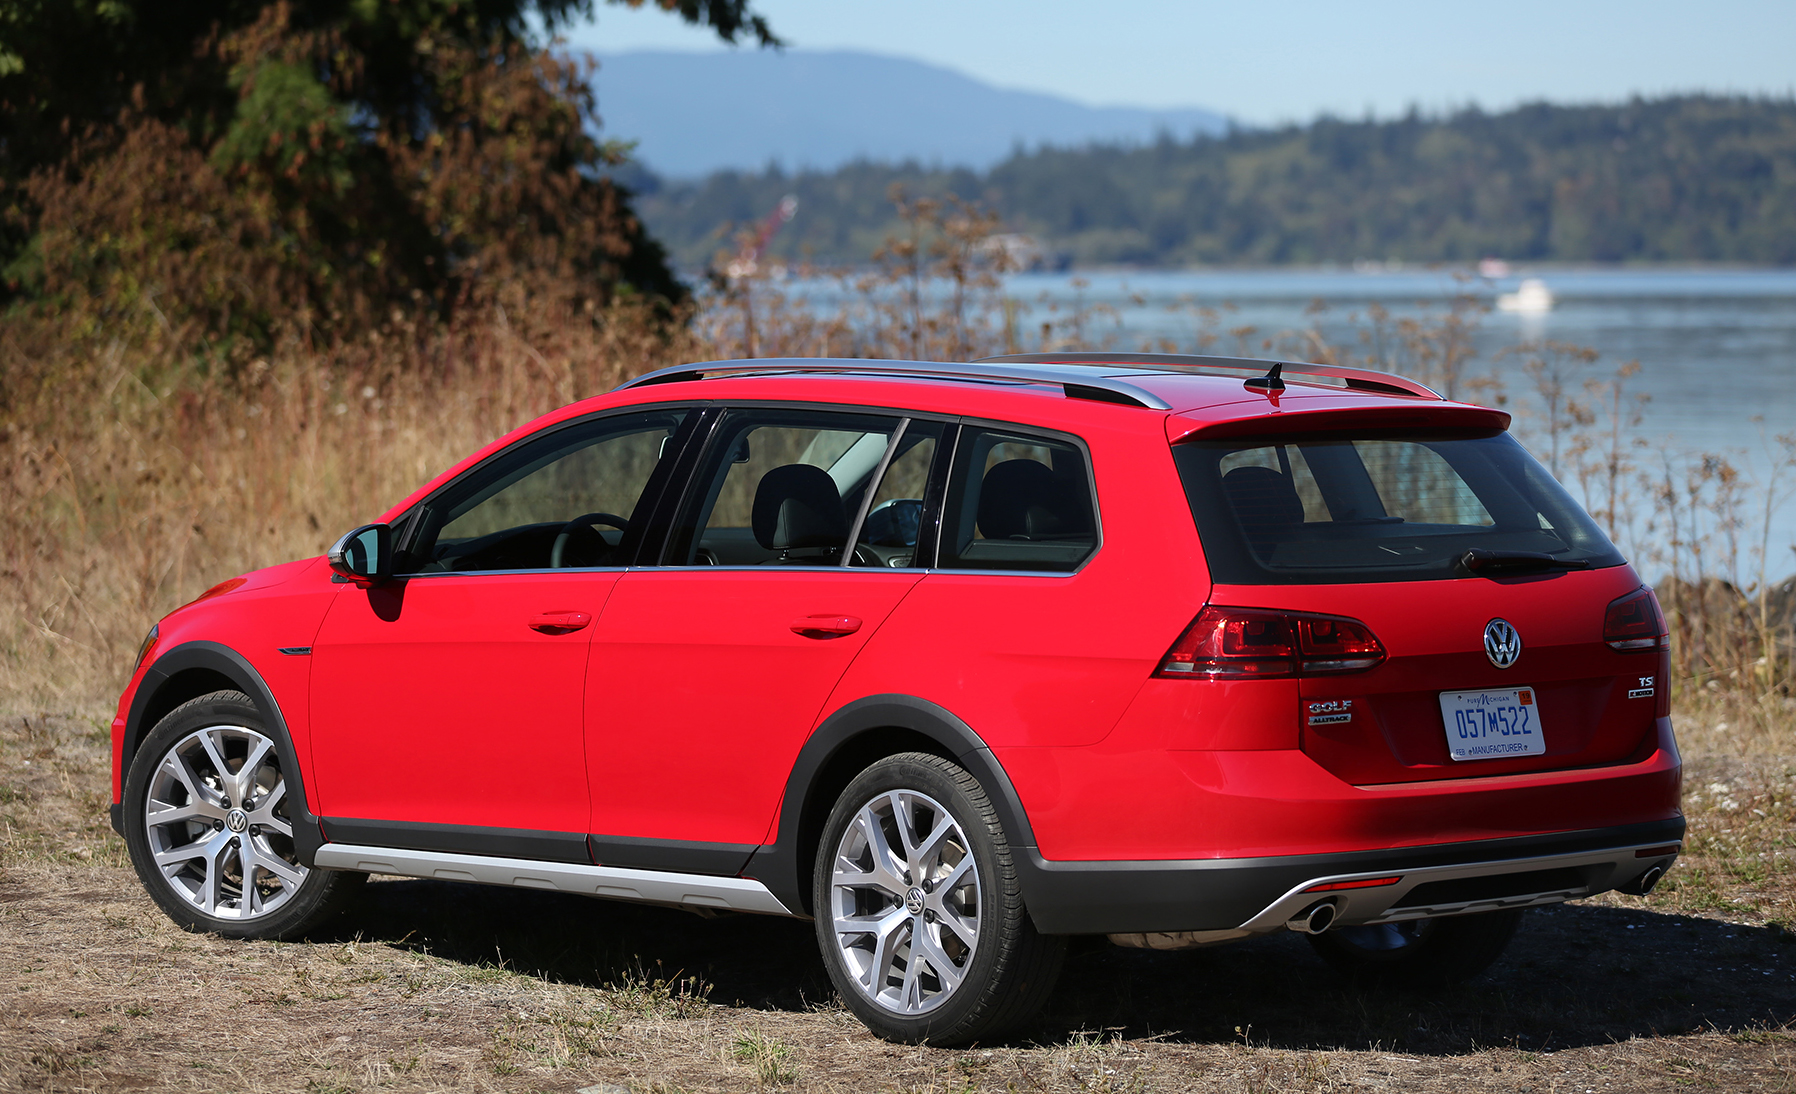 With just introduced Golf Alltrack, VW is short for versatile wagon